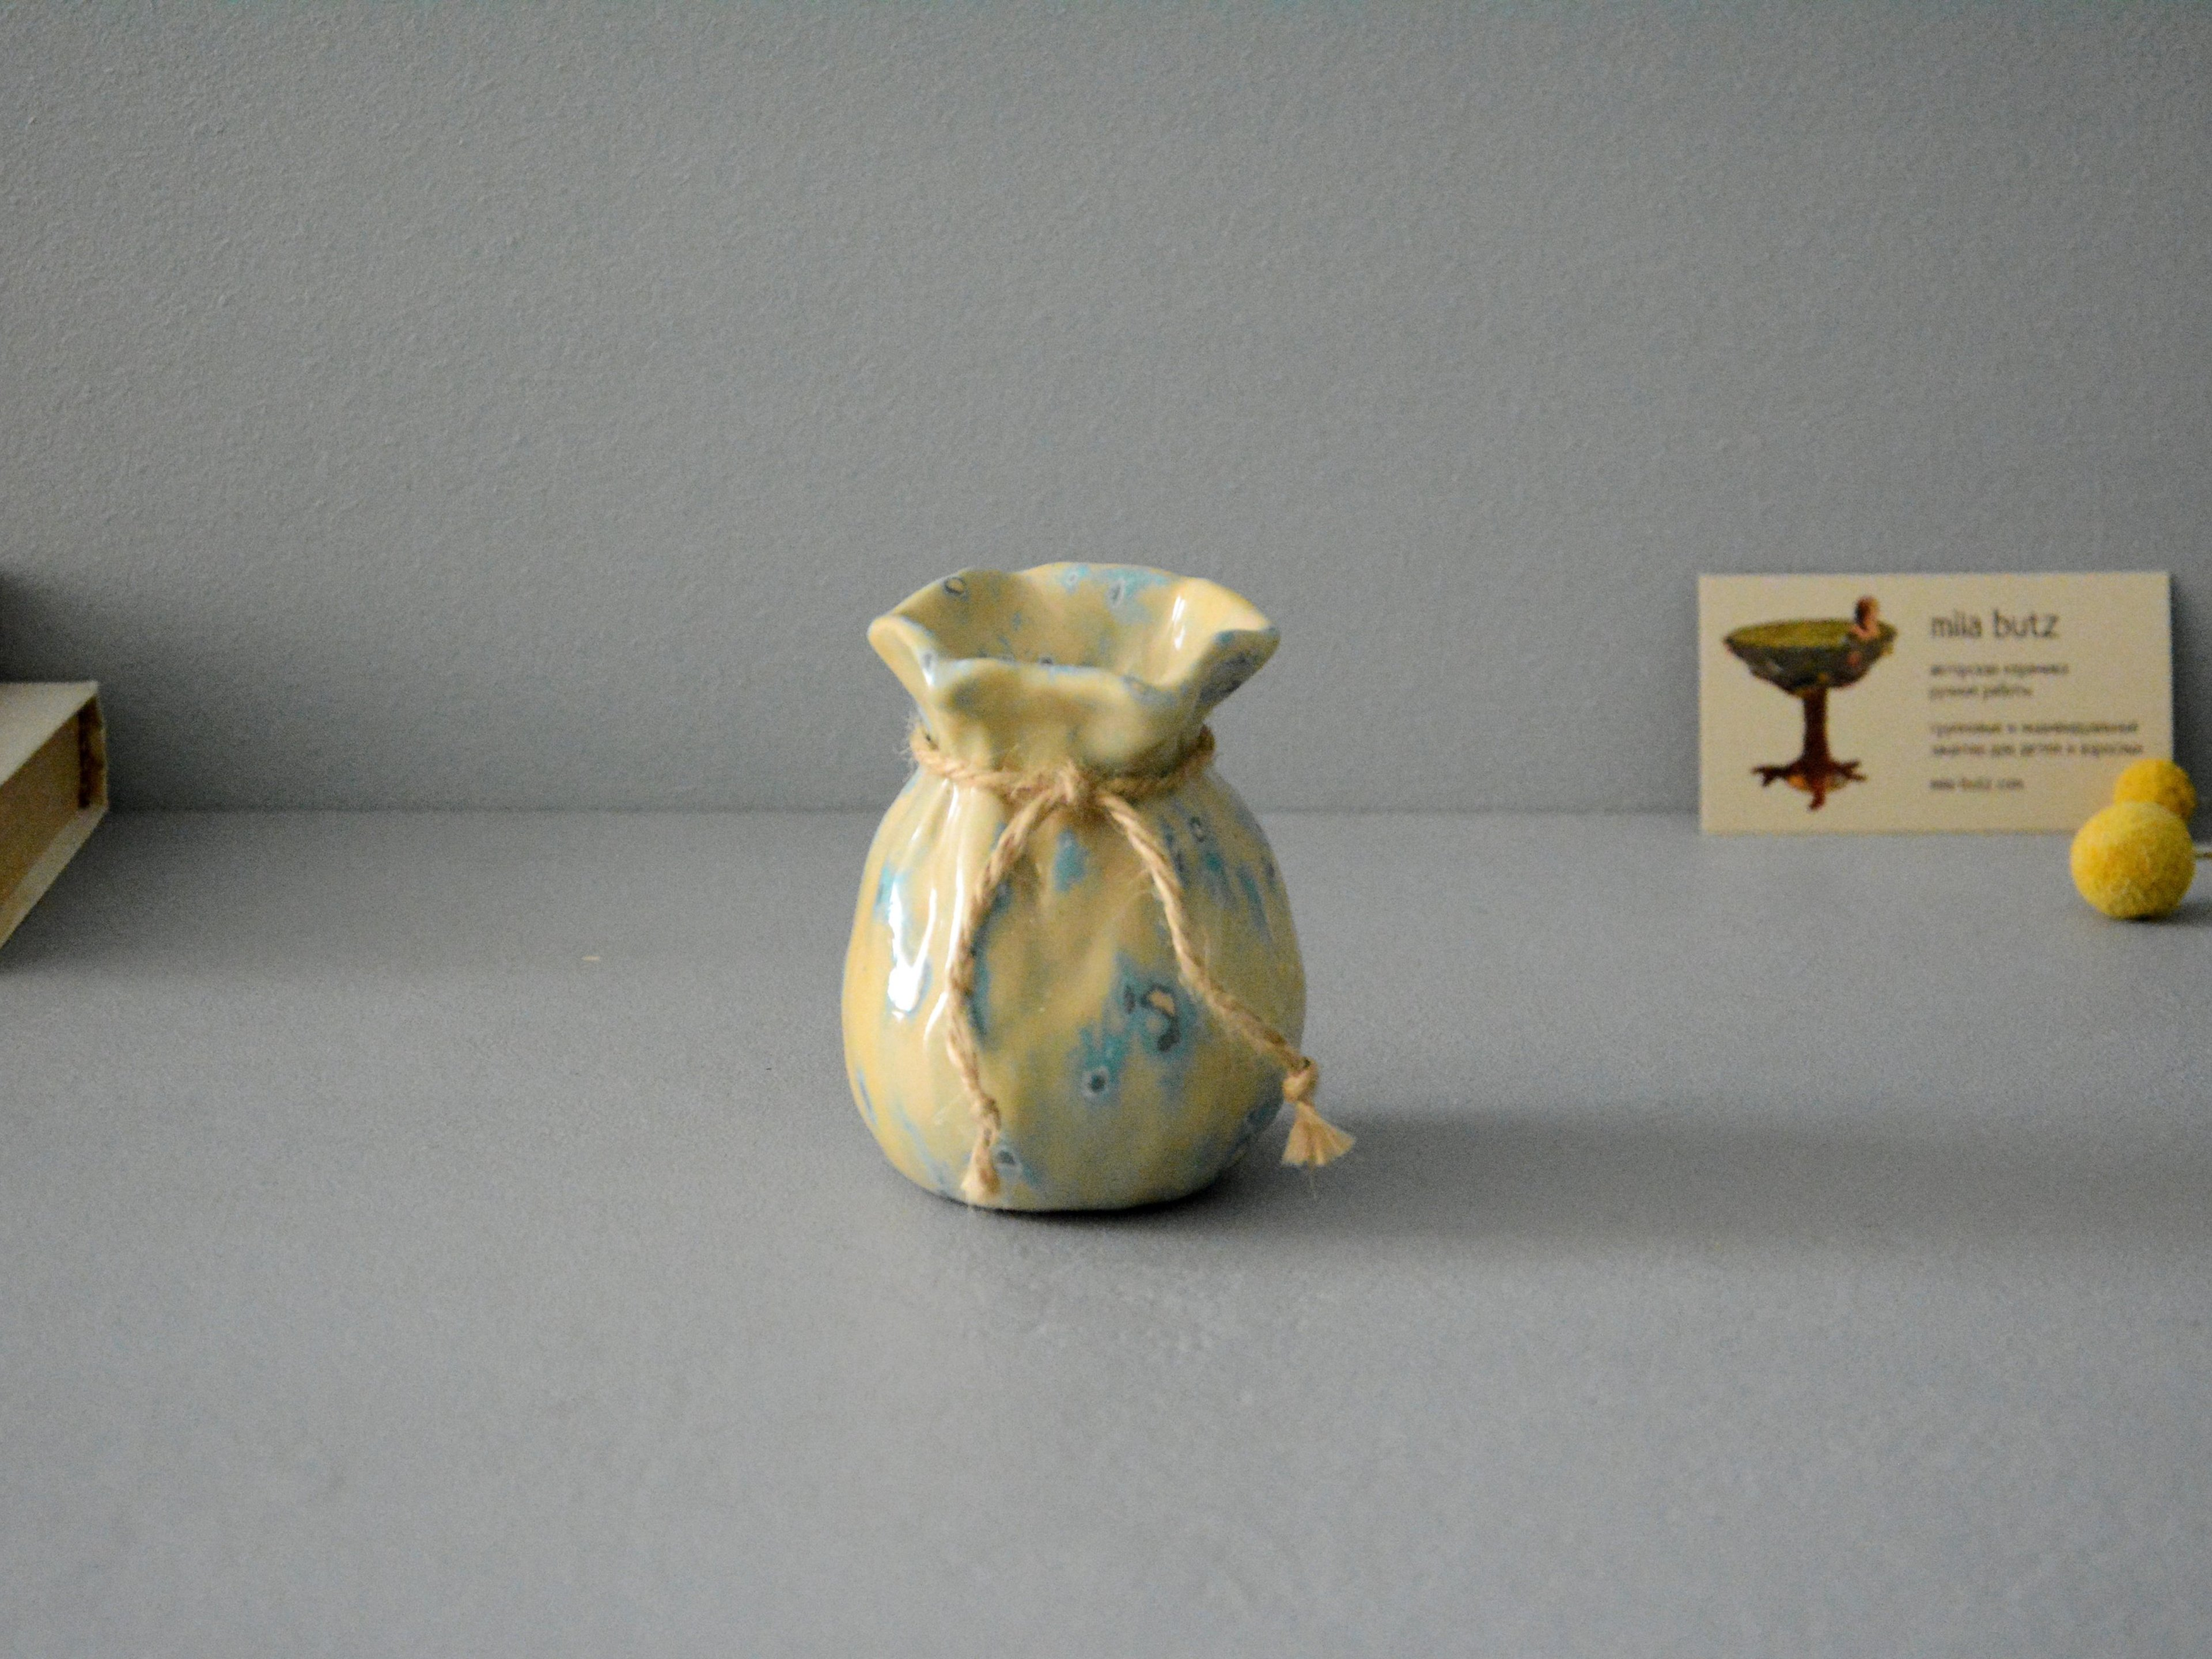 Small Vase or flowers «Beige Bagful», height - 9 cm, color - beige. Photo 1407-3840-2880.